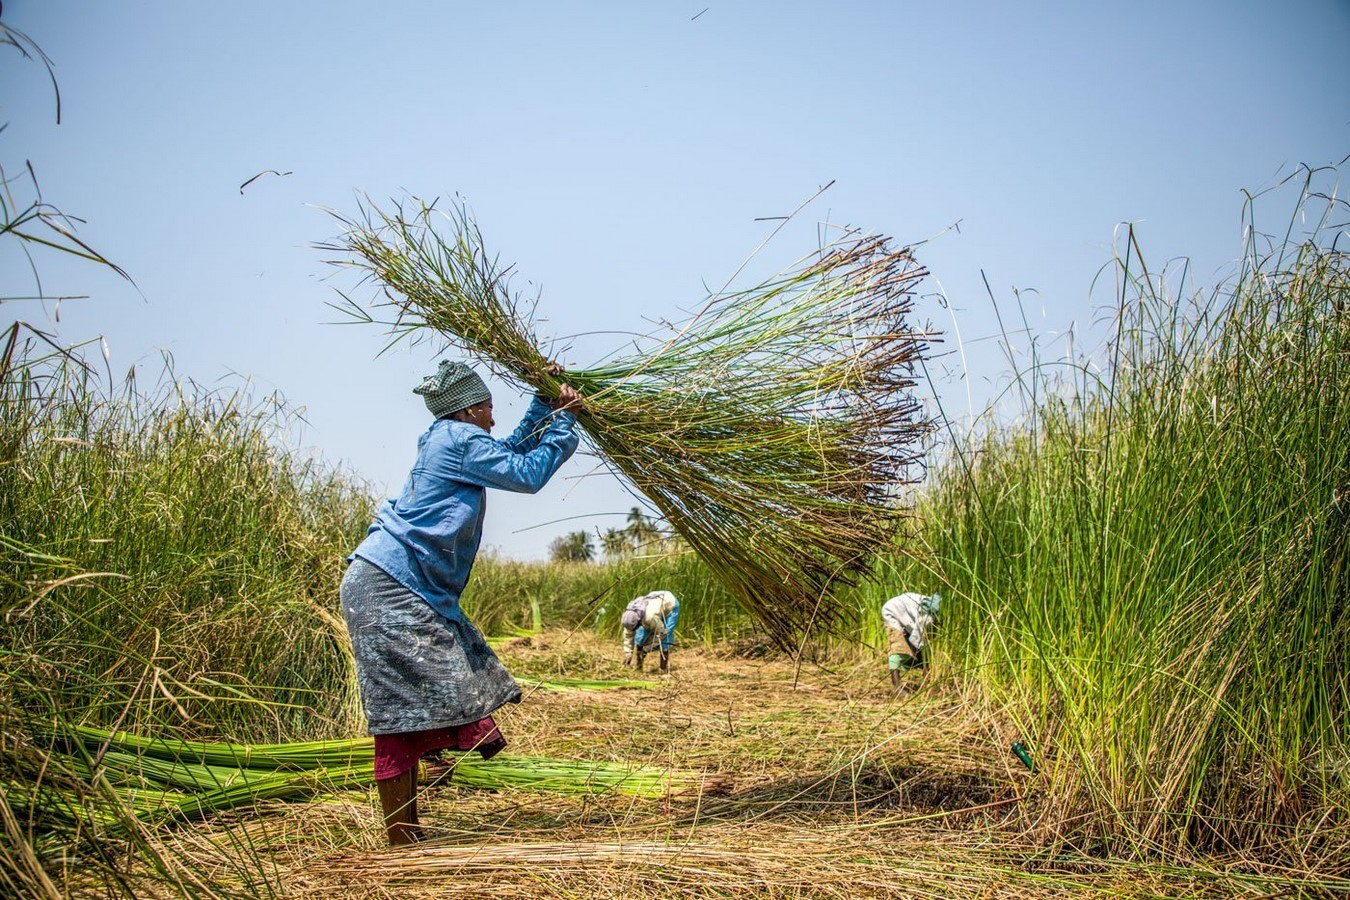 How are the rural development projects kill cottage industries - Sheet3